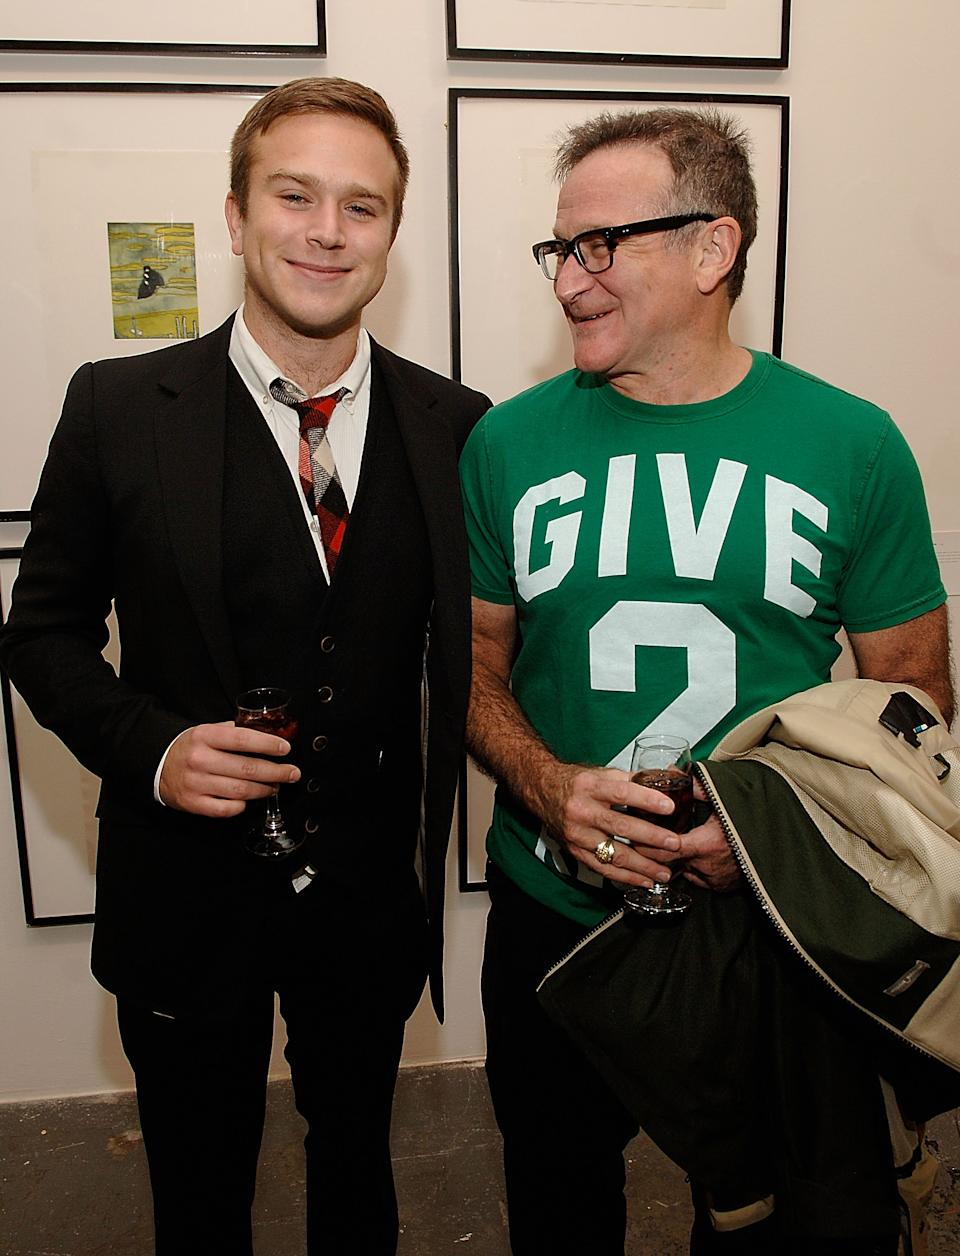 Zak Williams and Robin Williams pictured in 2008. (Photo by Jamie McCarthy/WireImage for Timo Wallets LLC)